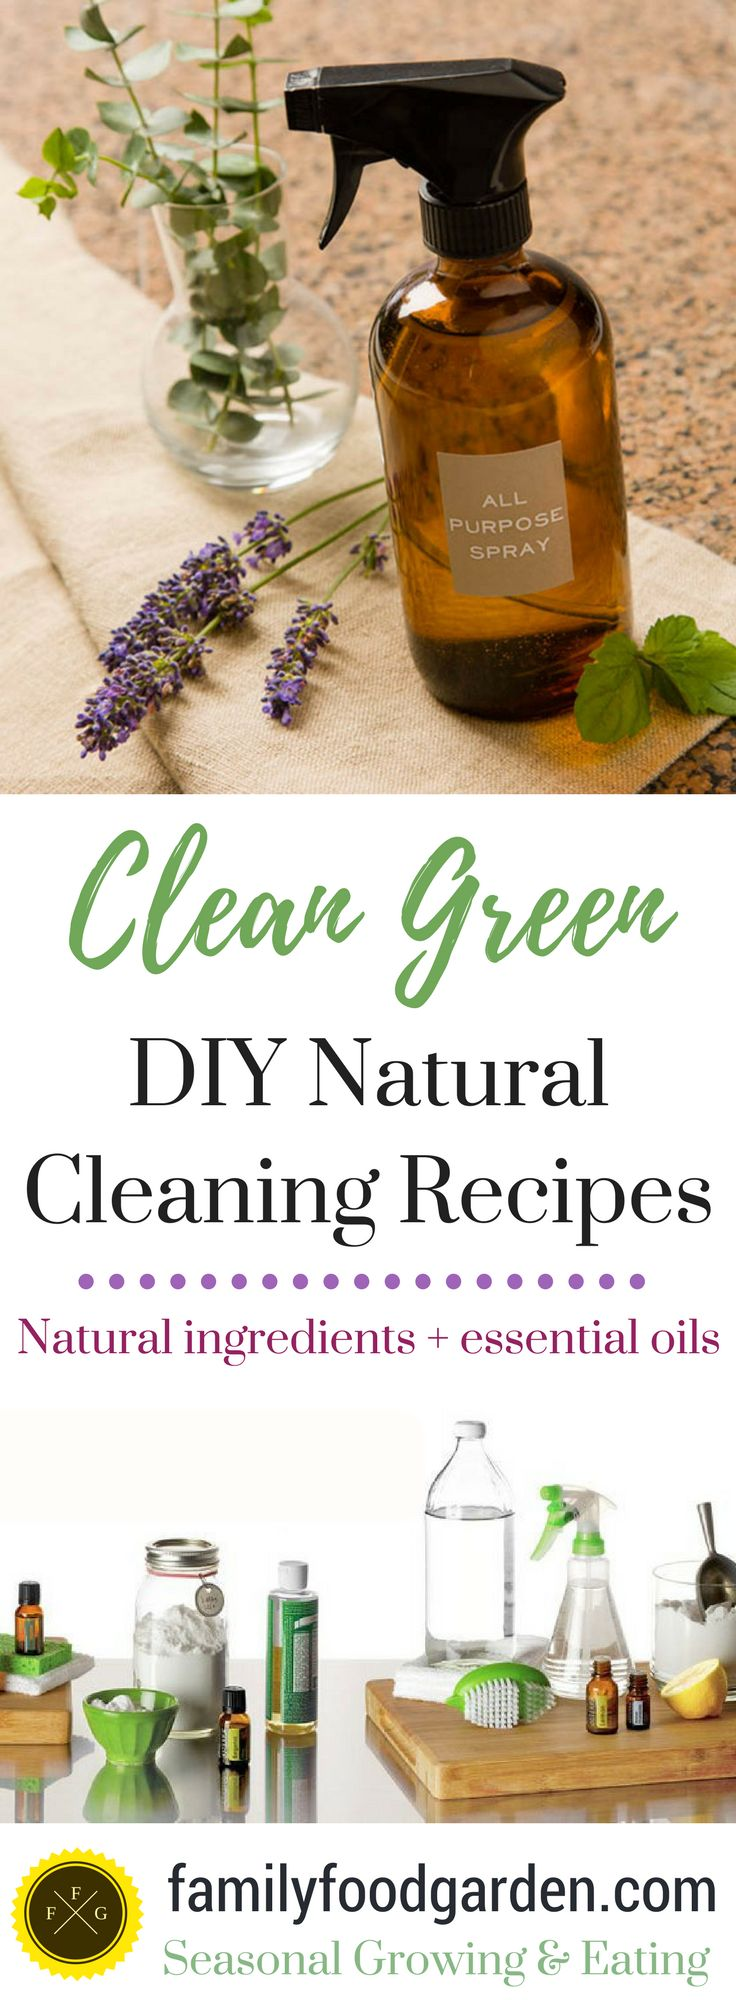 Spring can make you feel so renewed after a long winter It's time to air out the house again, tackle all those hard to clean areas of the home and plant your garden. However a lot of cleaners, even the ones that I've seen labelled as 'natural' are often full of chemicals. That's not clean in my o